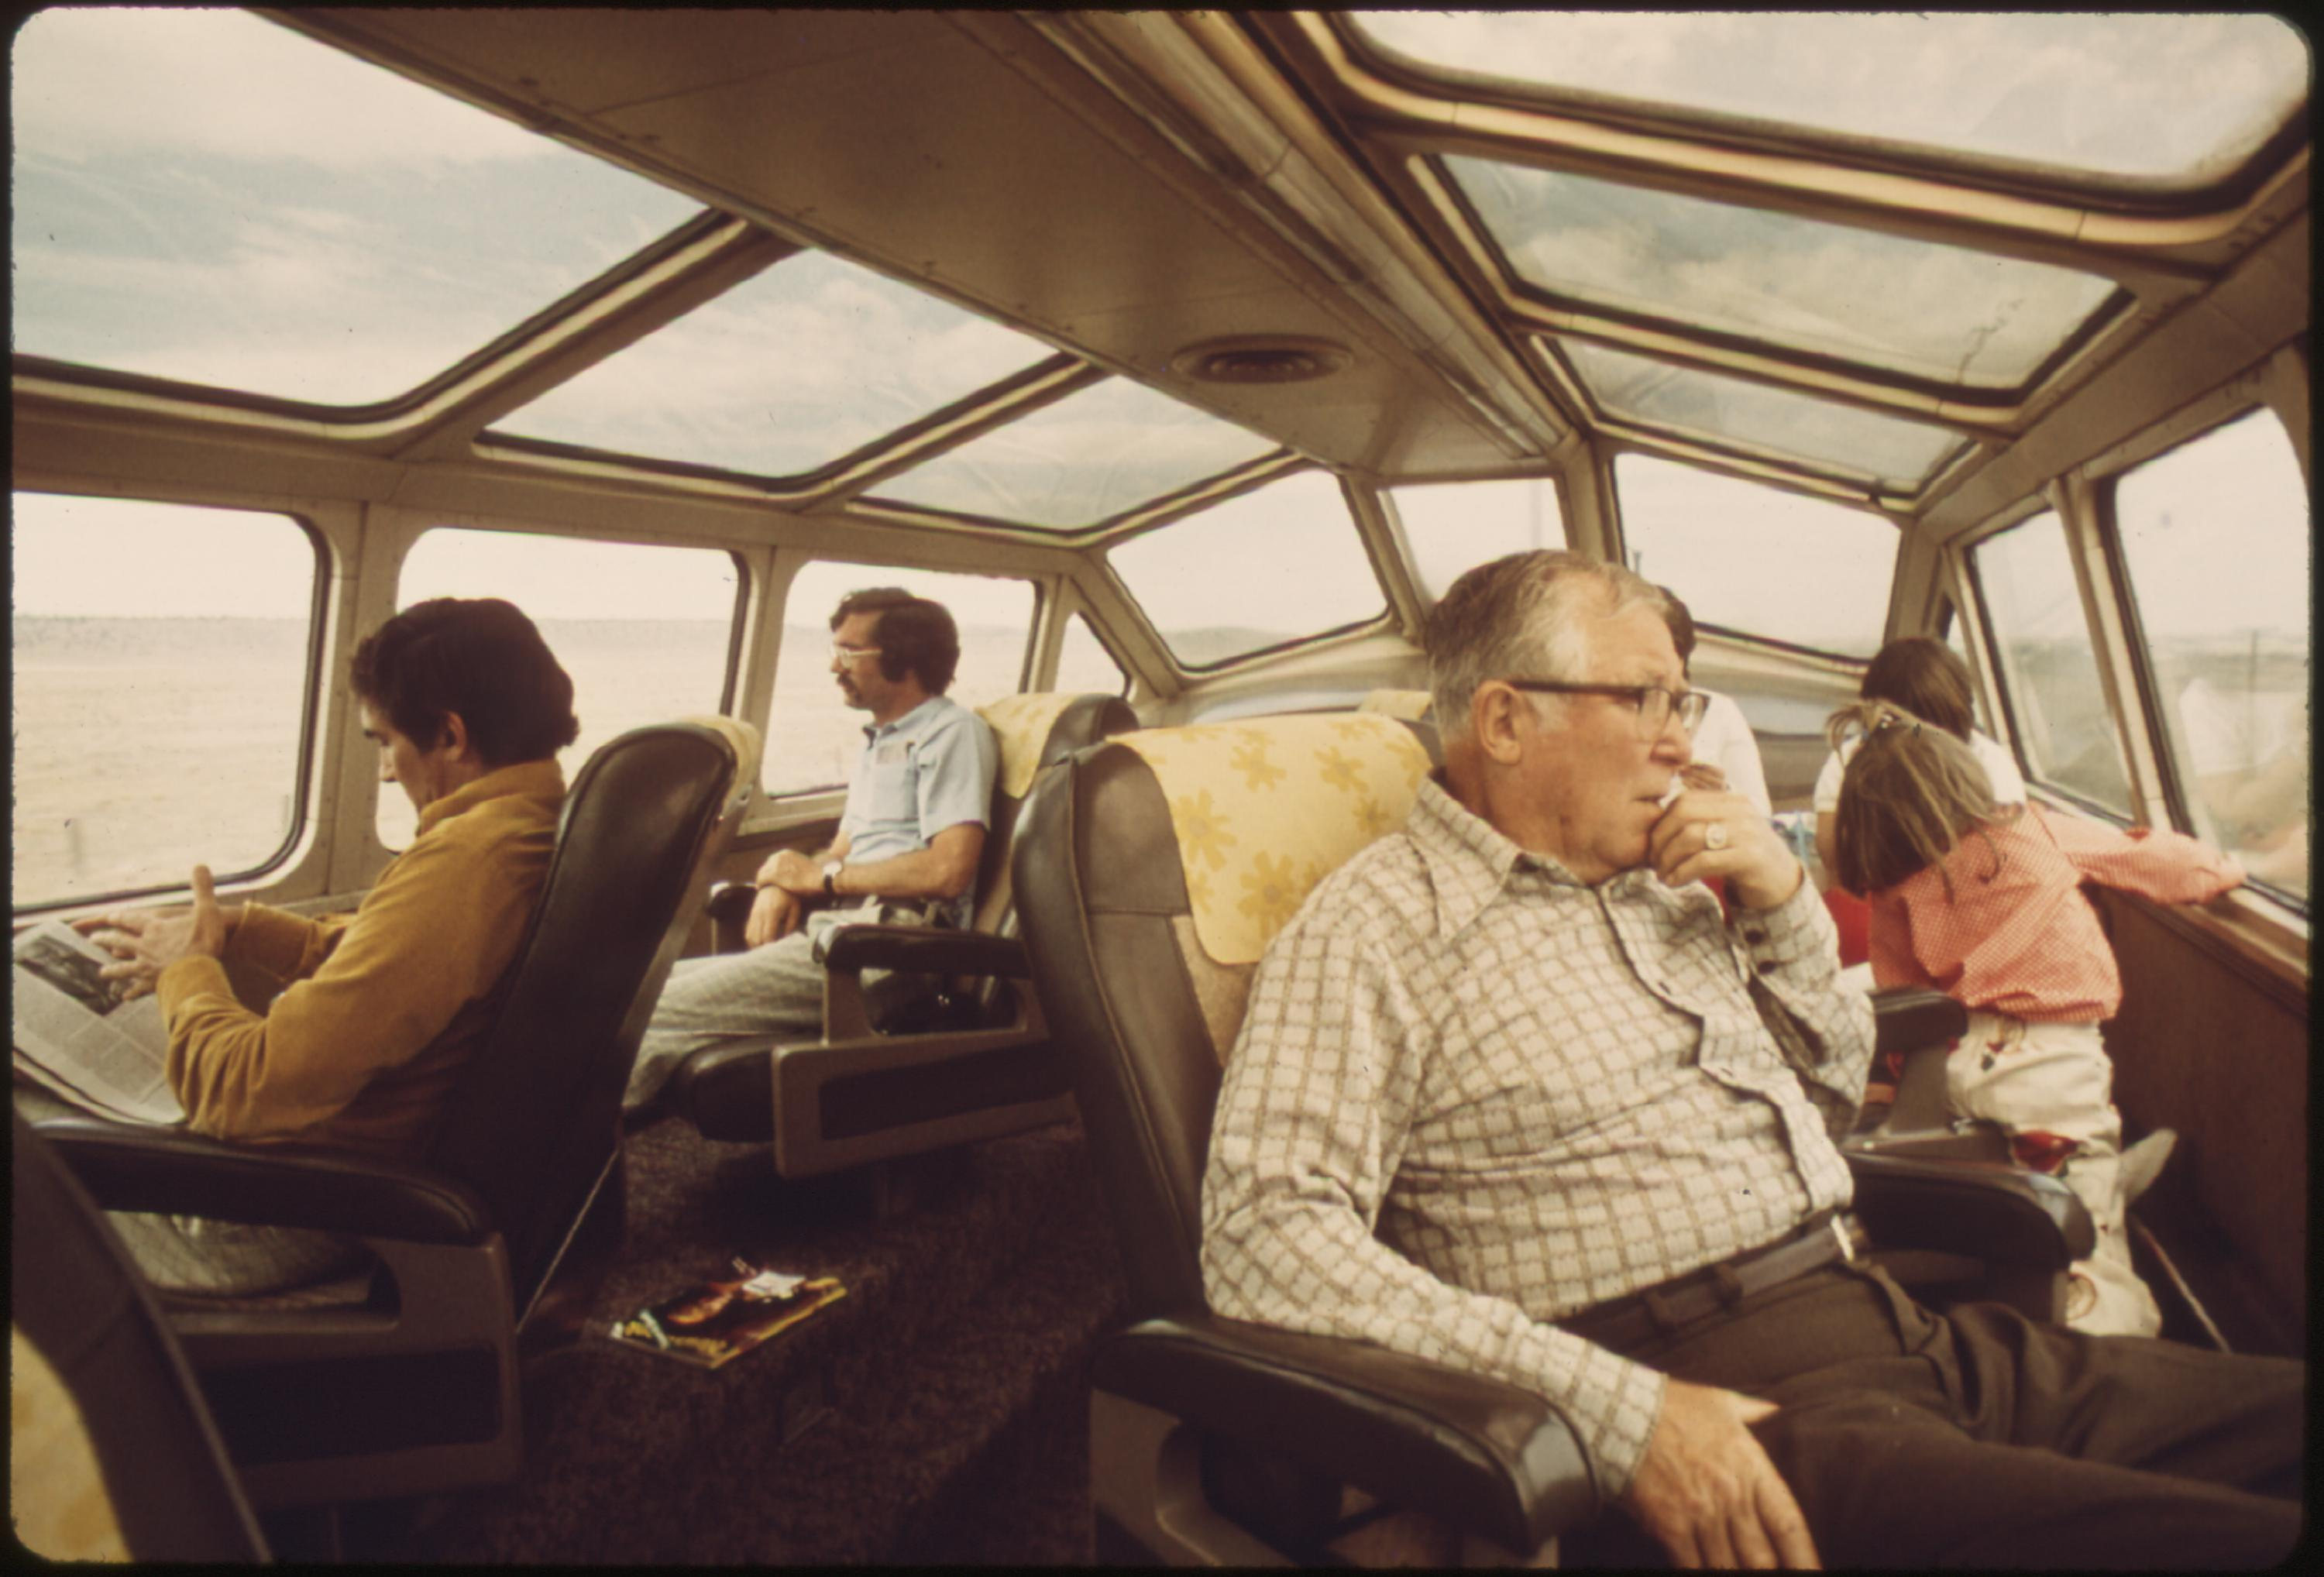 Arizona and New Mexico scenery attract passengers to the dome car of the Southwest Limited, an overnight train from Los Angeles, California, to Albuquerque, New Mexico, June 1974